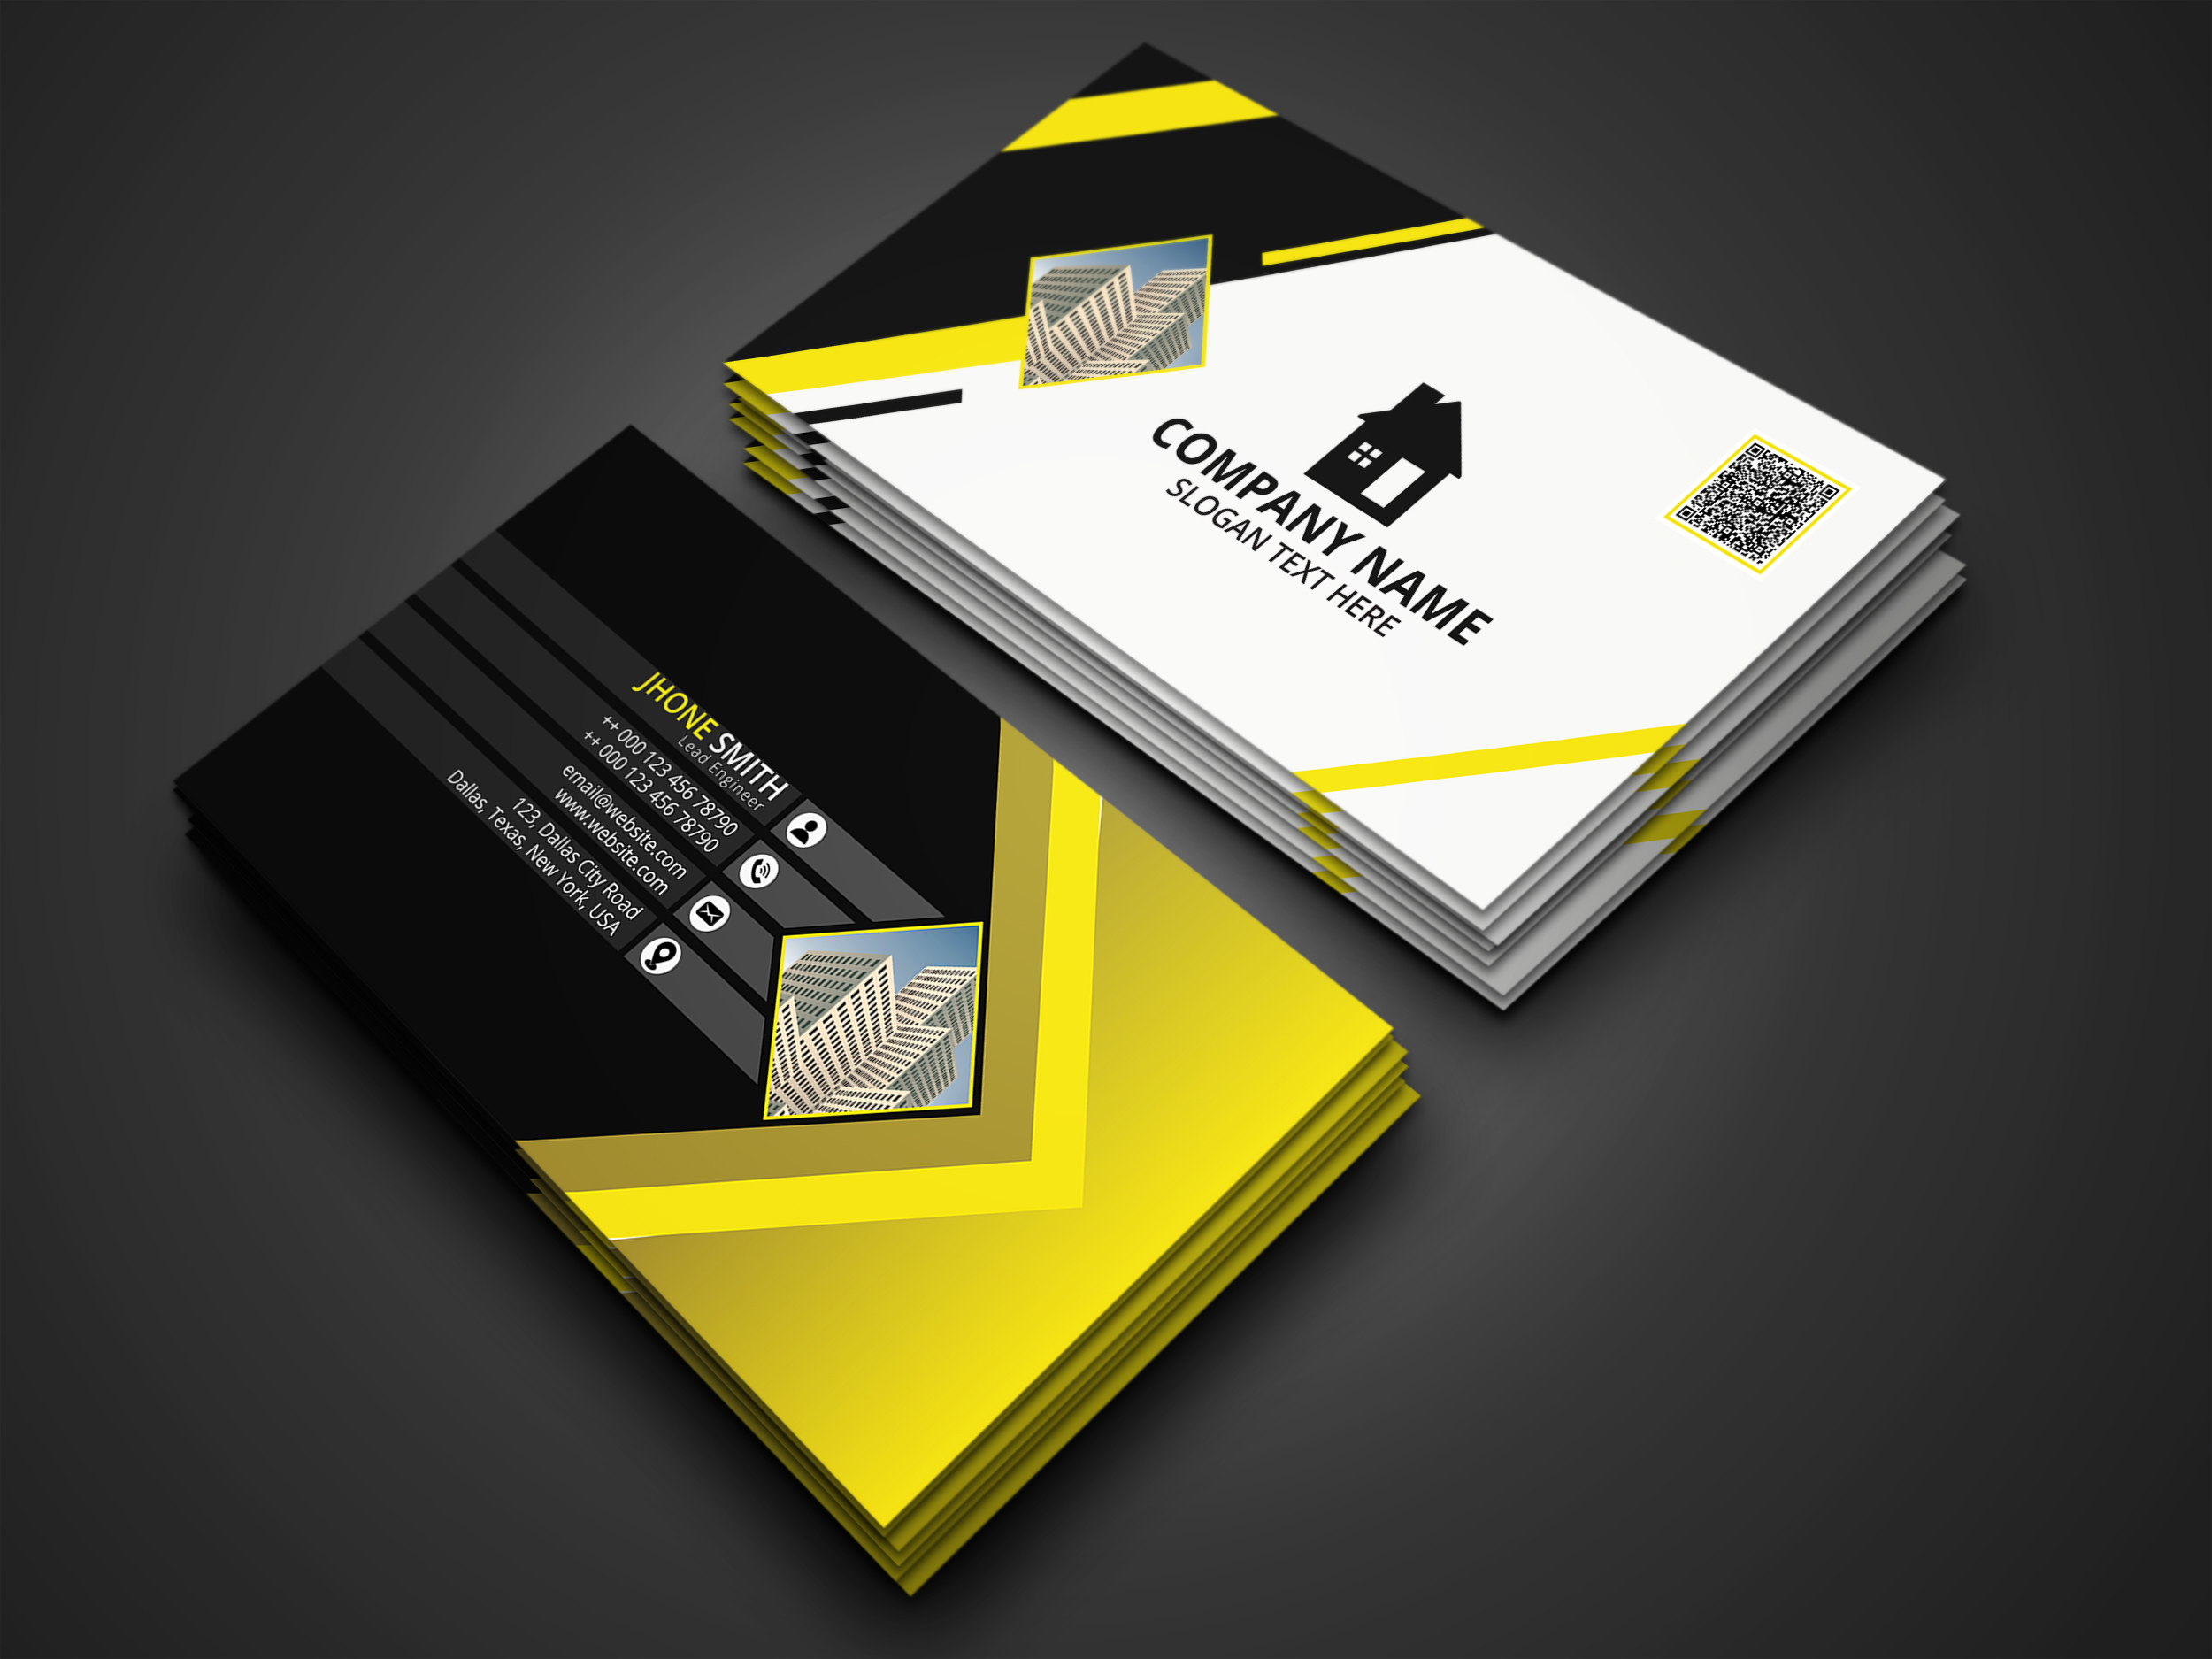 I will create your business cards within 2 hours